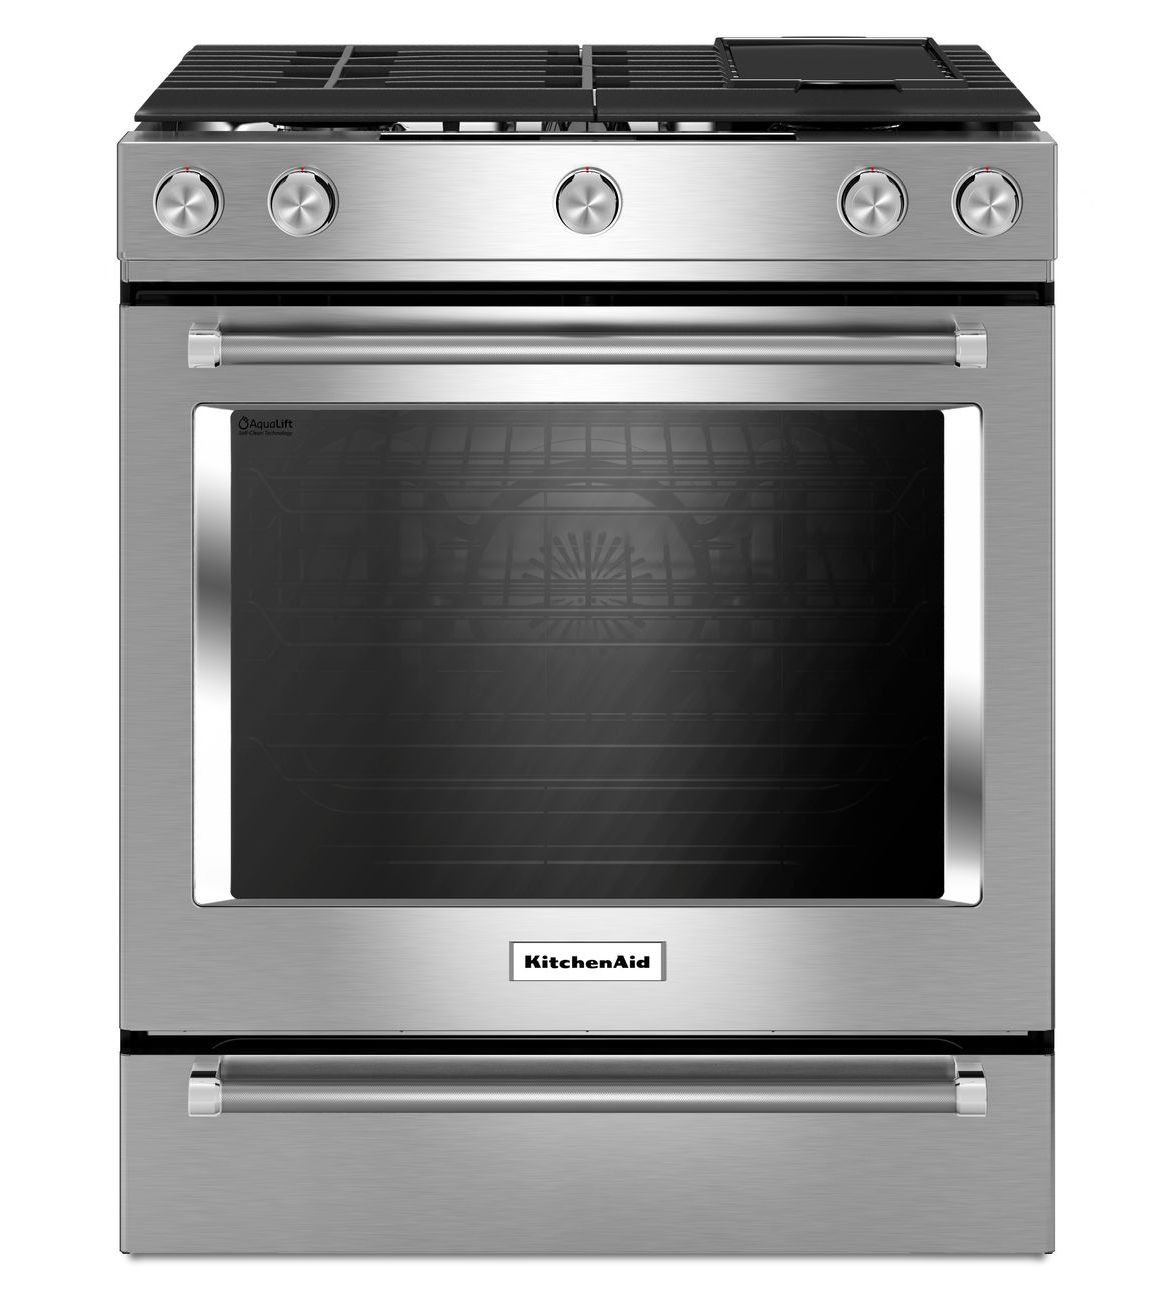 KitchenAid Gas Convection Slide-In Range with Baking Drawer